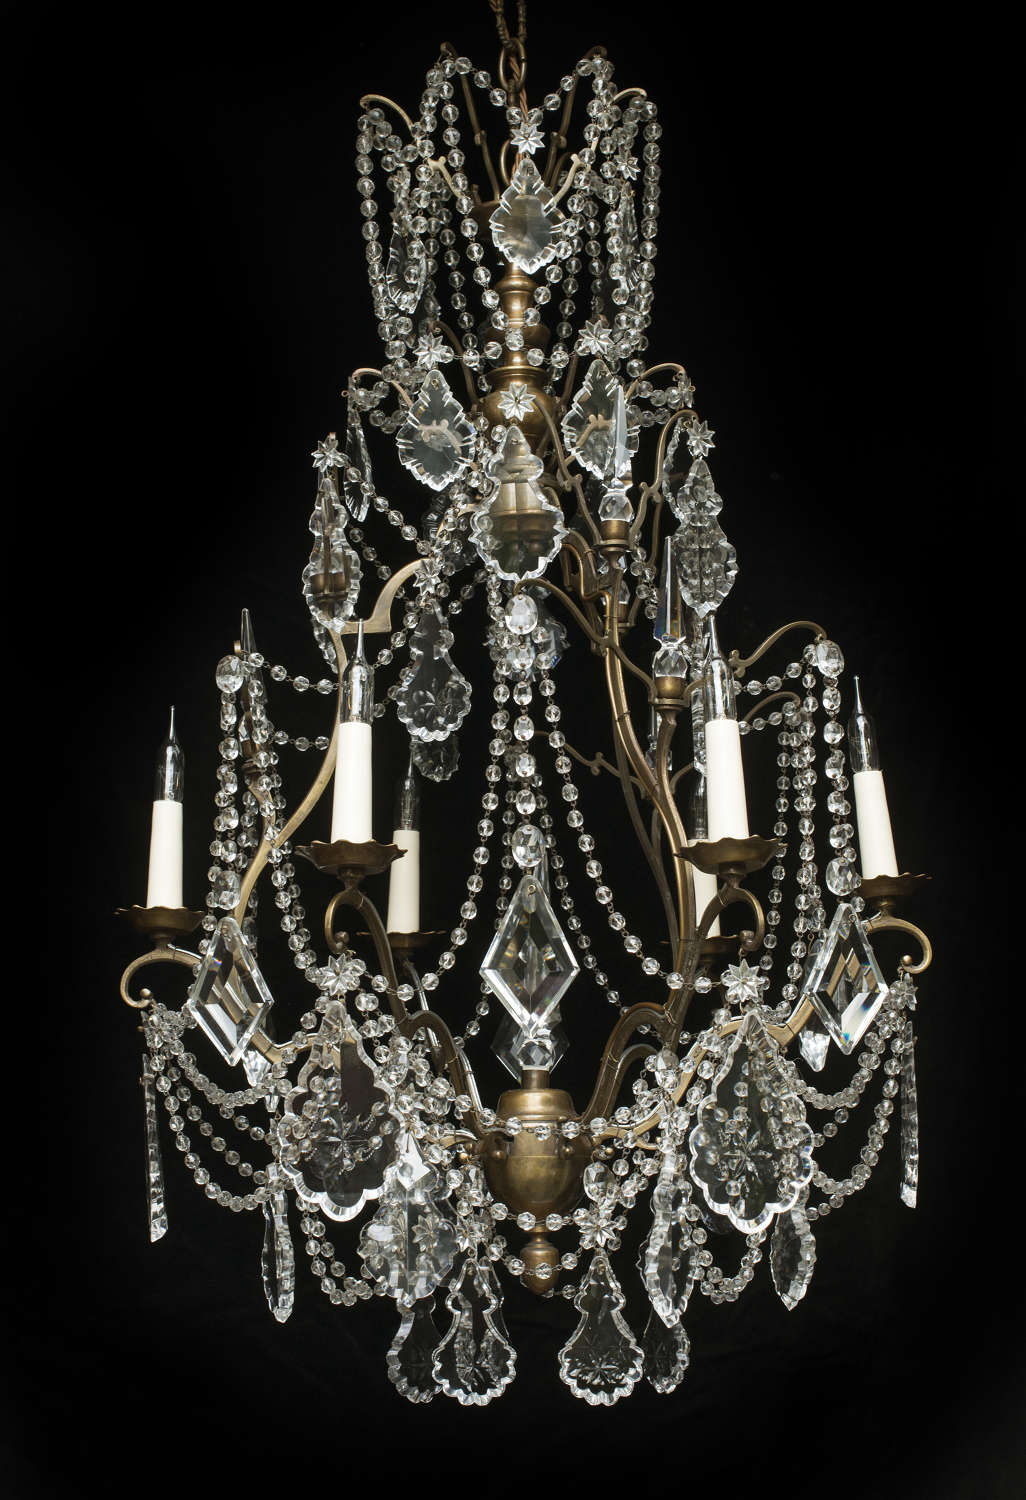 6 light French Antique Chandelier with flower patterned crystals